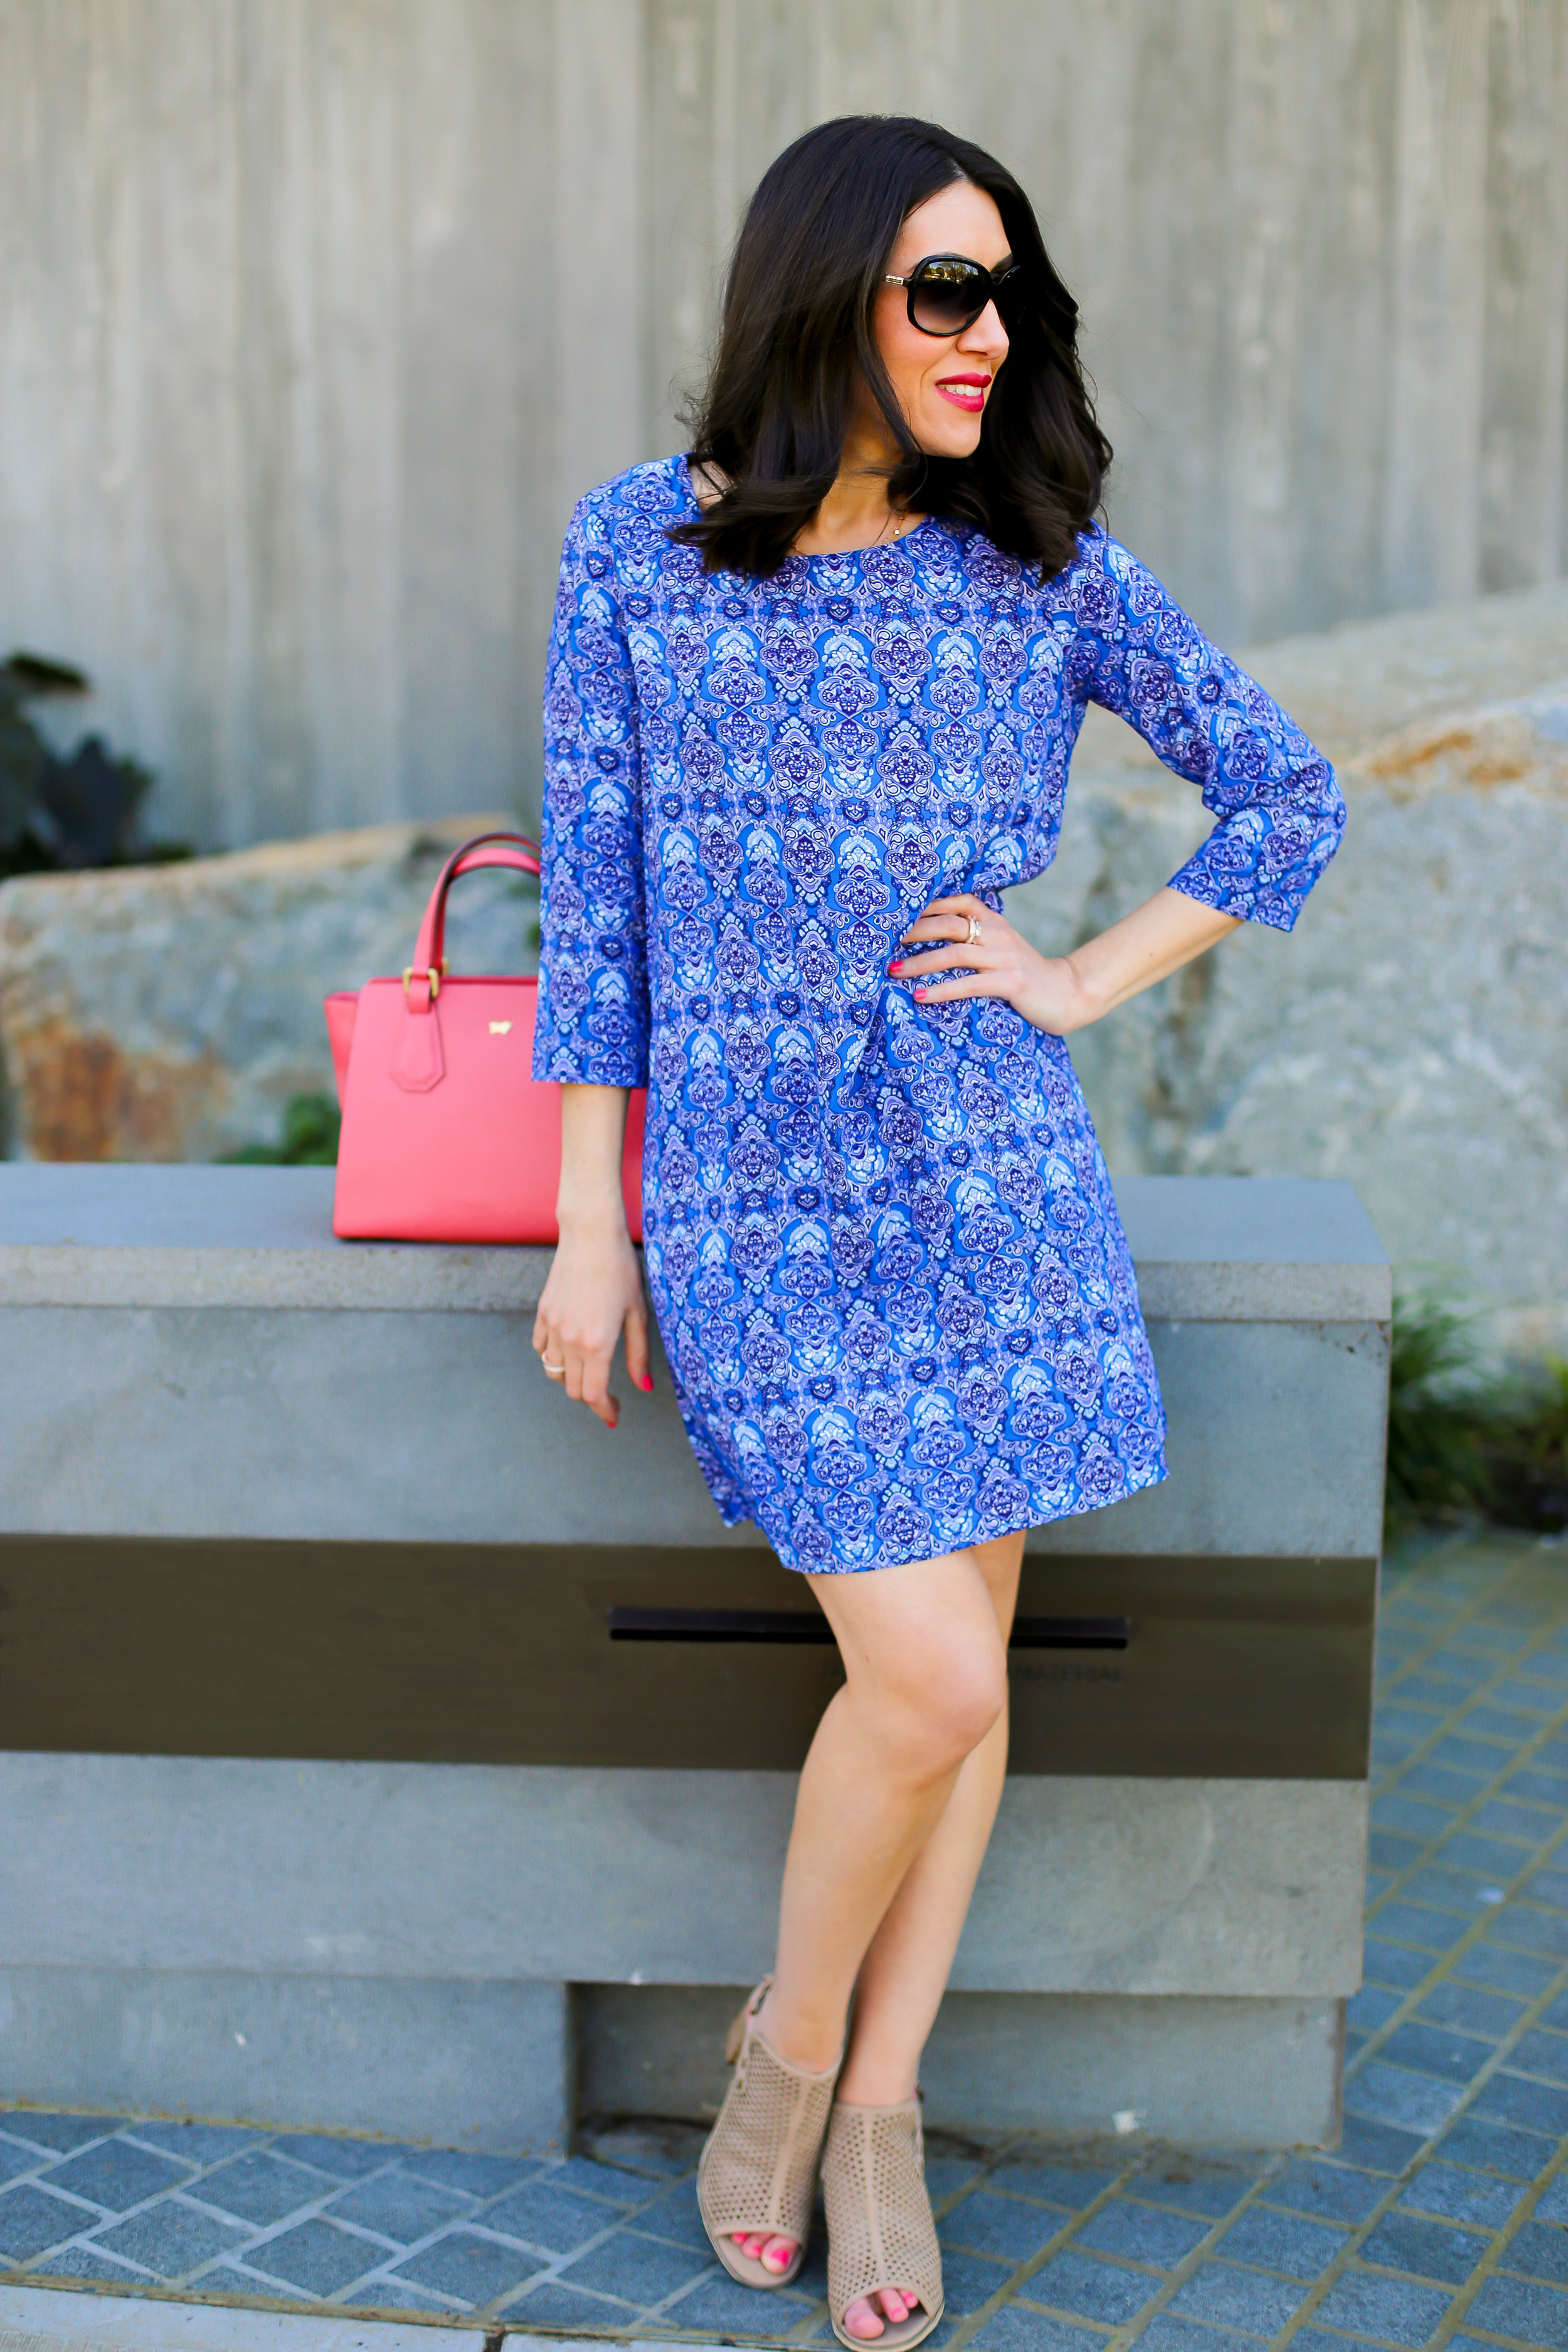 Lisa wears -  Dress  by  Indigo ,  Rings  by  Sophie Catherine ,  Shoes  by  Mollini ,  Bag  by  Braun Buffel  (all available from  Collins234 )